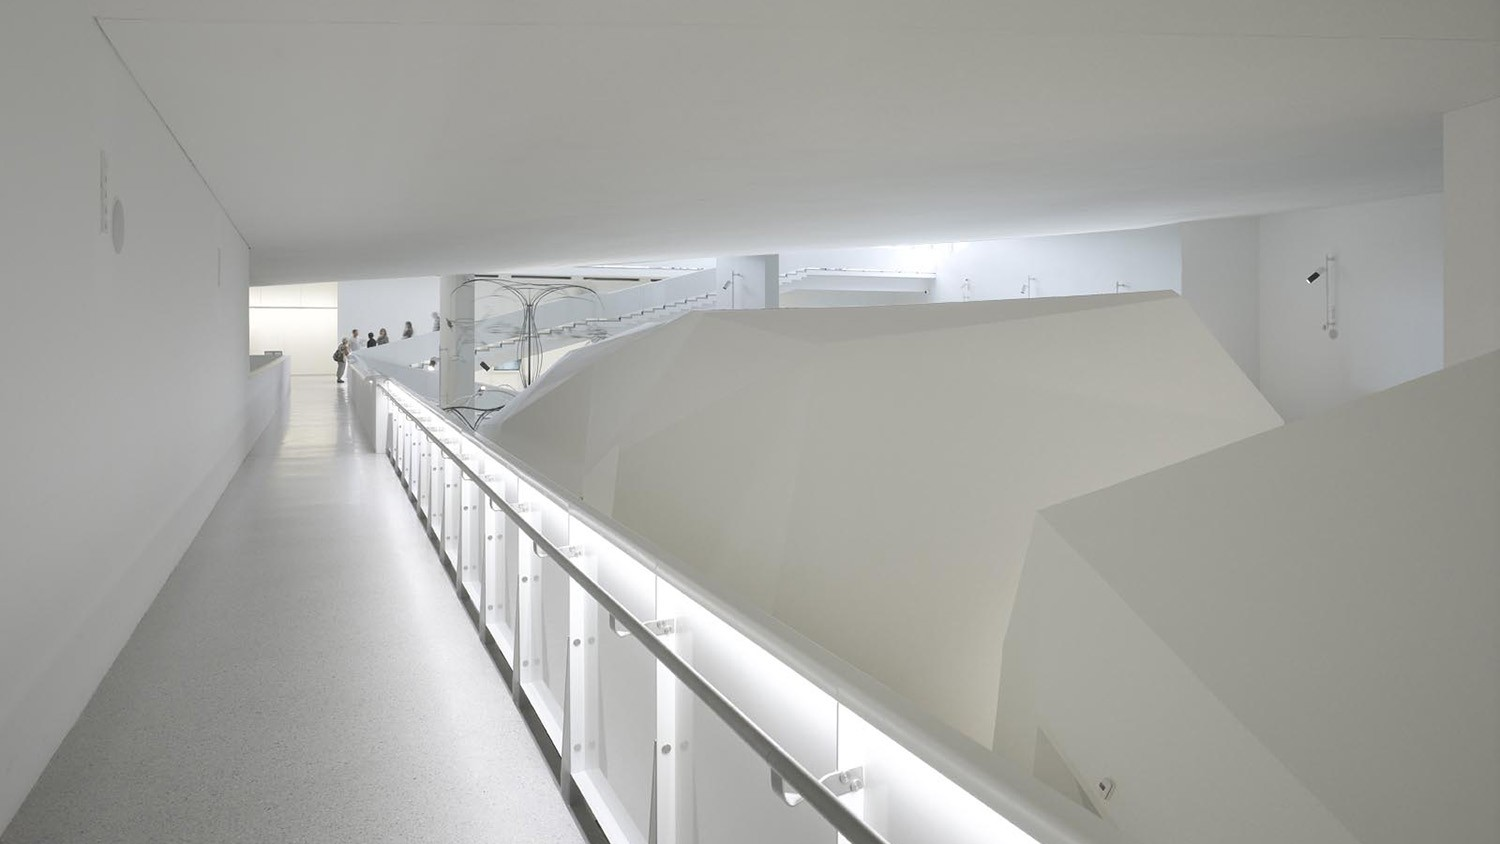 https://stevenholl.sfo2.digitaloceanspaces.com/uploads/projects/project-images/RolandHalbe_Biarritz_RH2027-0060_WH.jpg